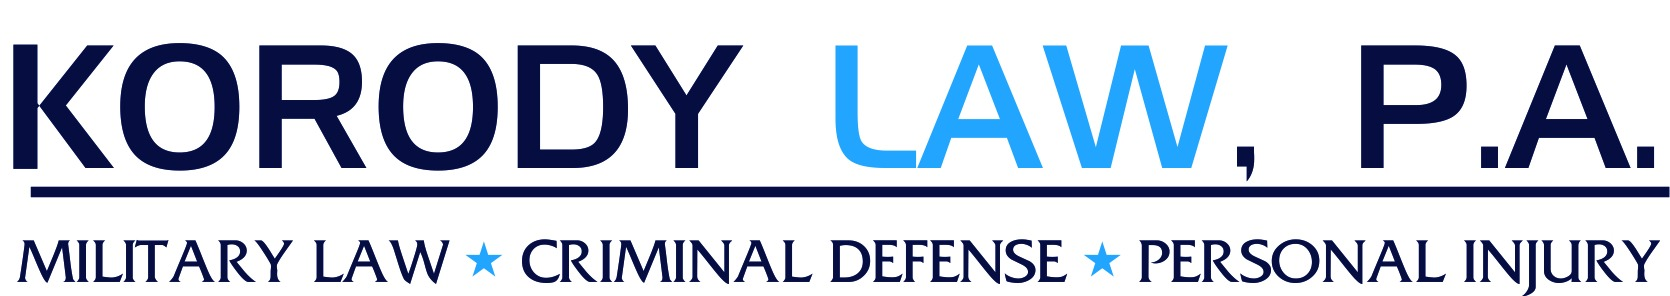 Korody Law, P.A. Logo